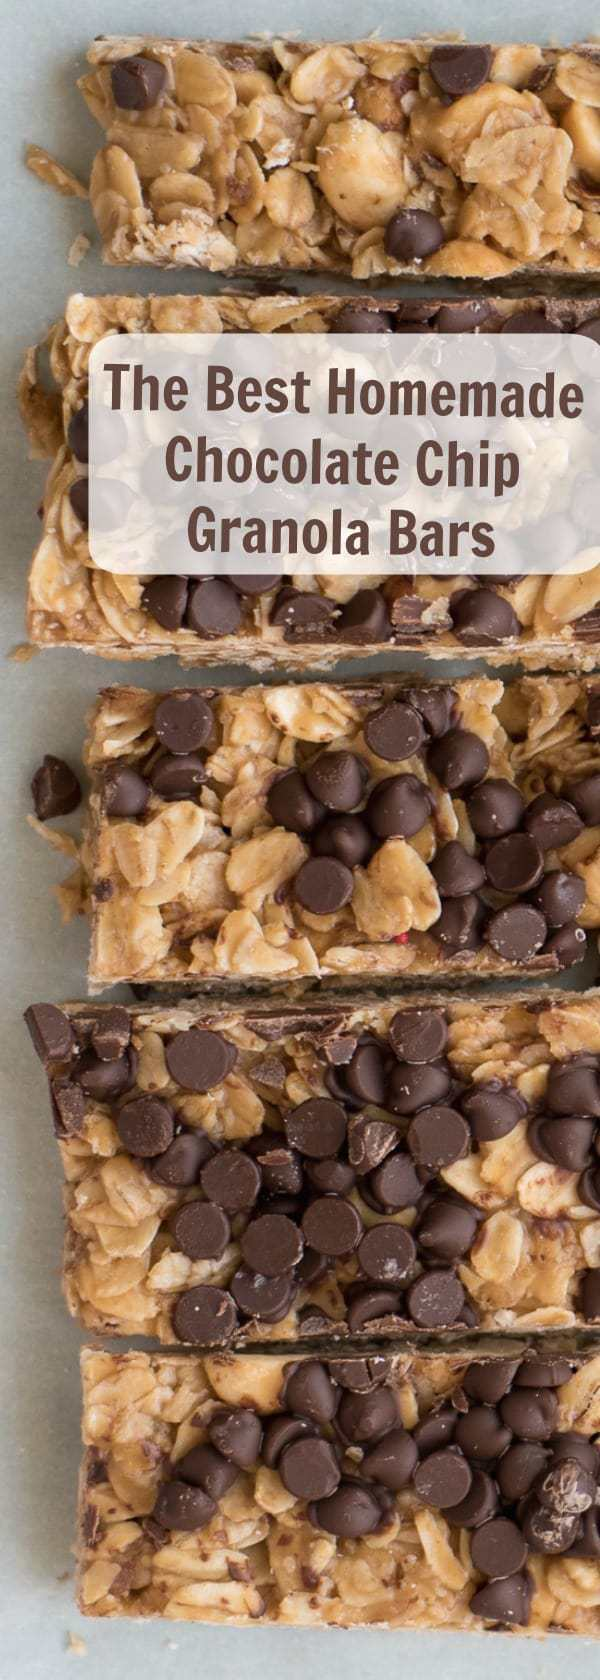 The best and easiest chocolate chip granola bar recipe ever, and the best part it includes peanut butter too!